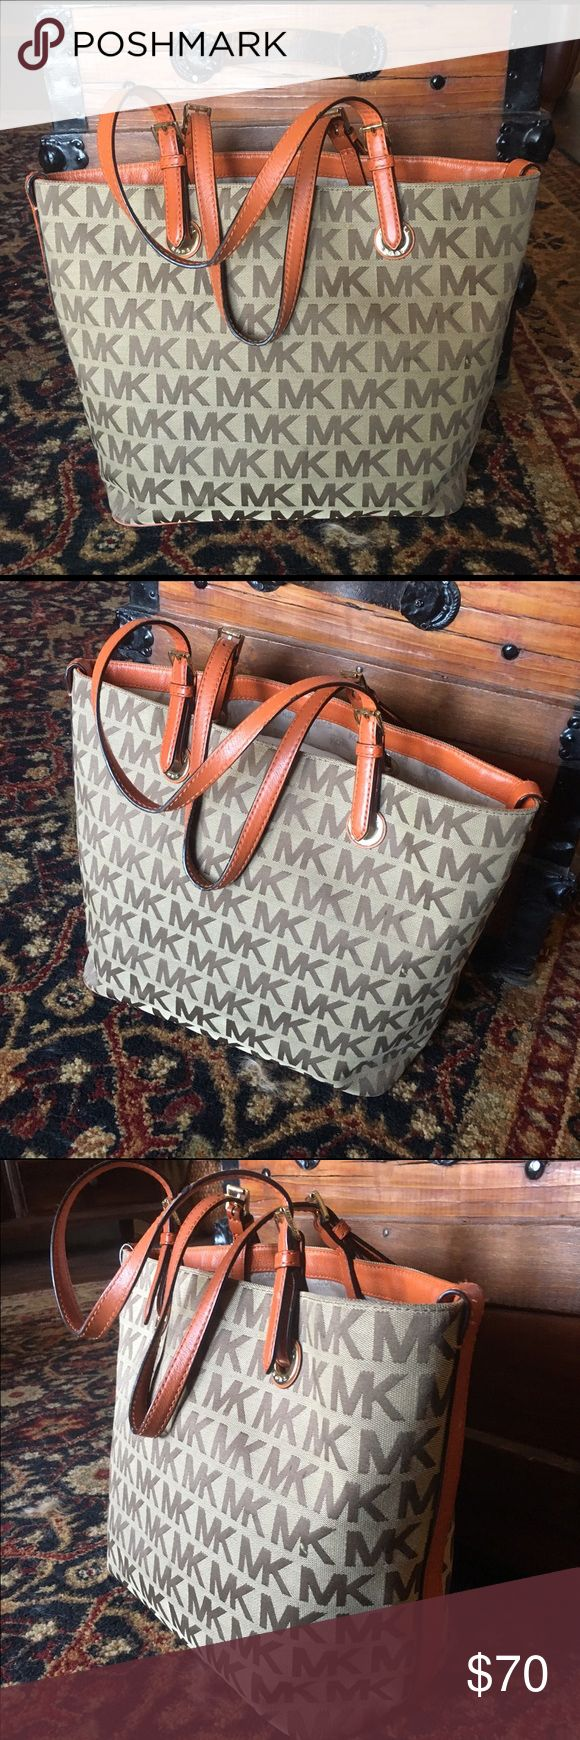 Grey & Orange MK monogram Tote Gently used Michael Kors purse. Bought from TJ Maxx. A few unnoticeable stains on the inside of the bottom of the purse, but overall condition is great. Michael Kors Bags Totes